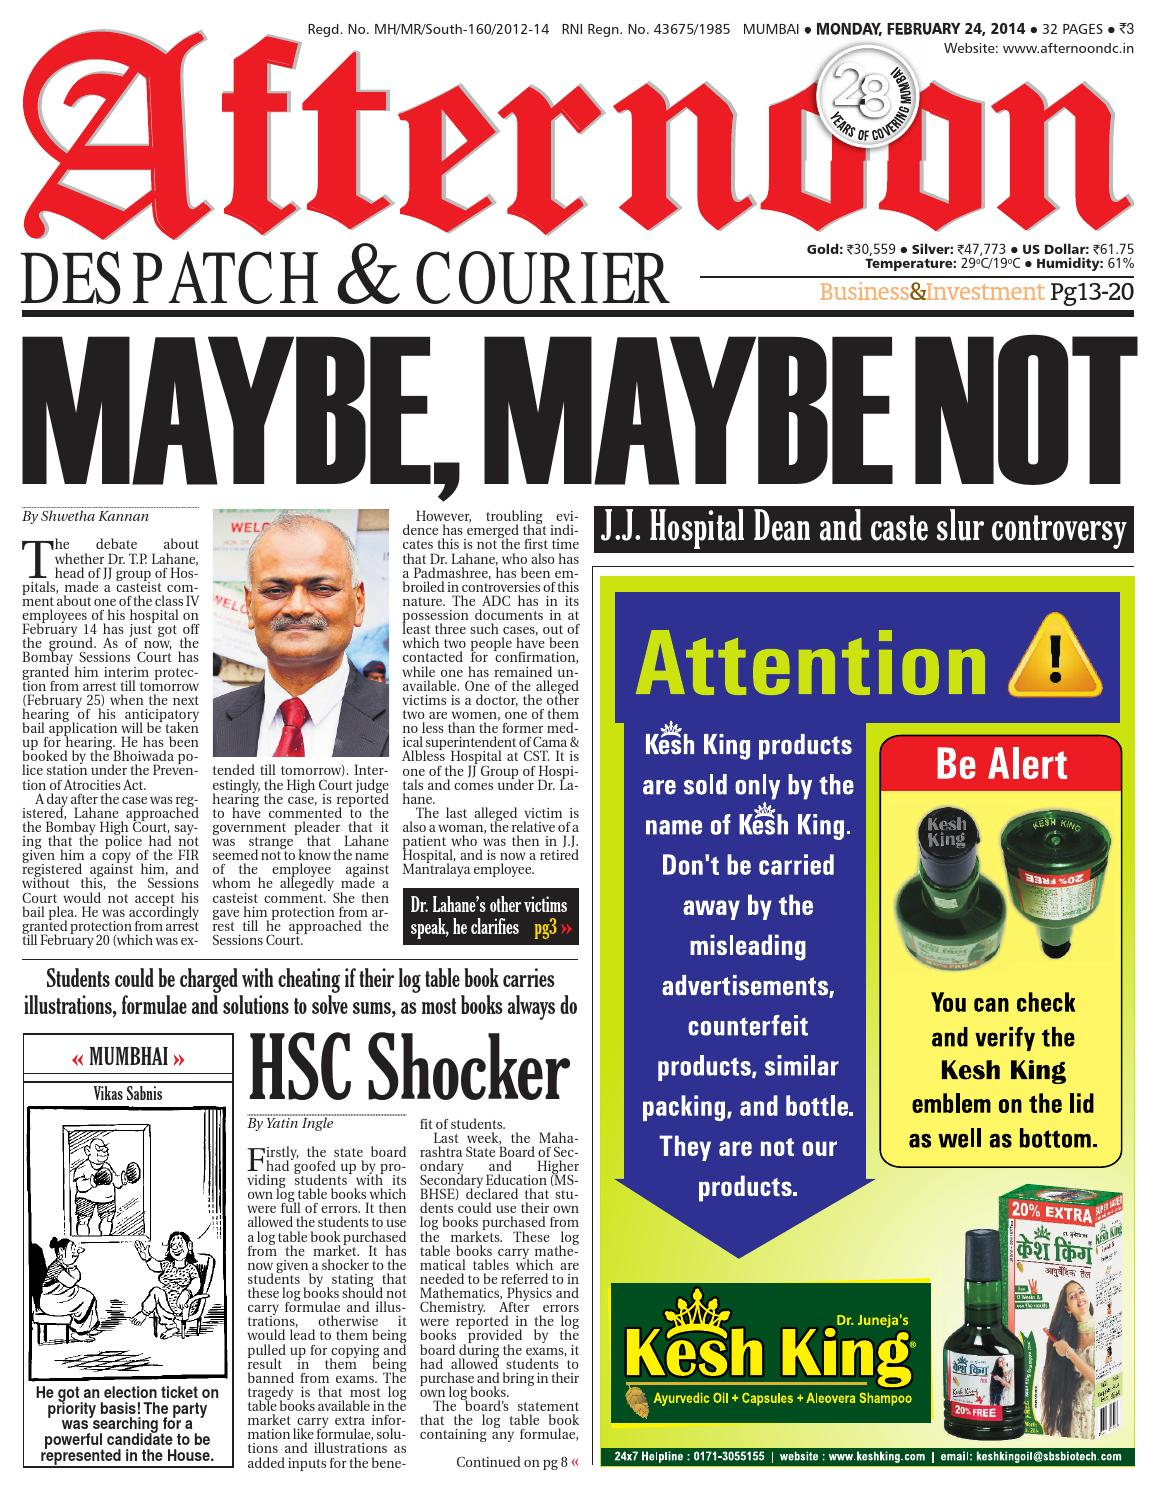 Adc 24 feb 2014 by Afternoon Despatch & Courier - issuu